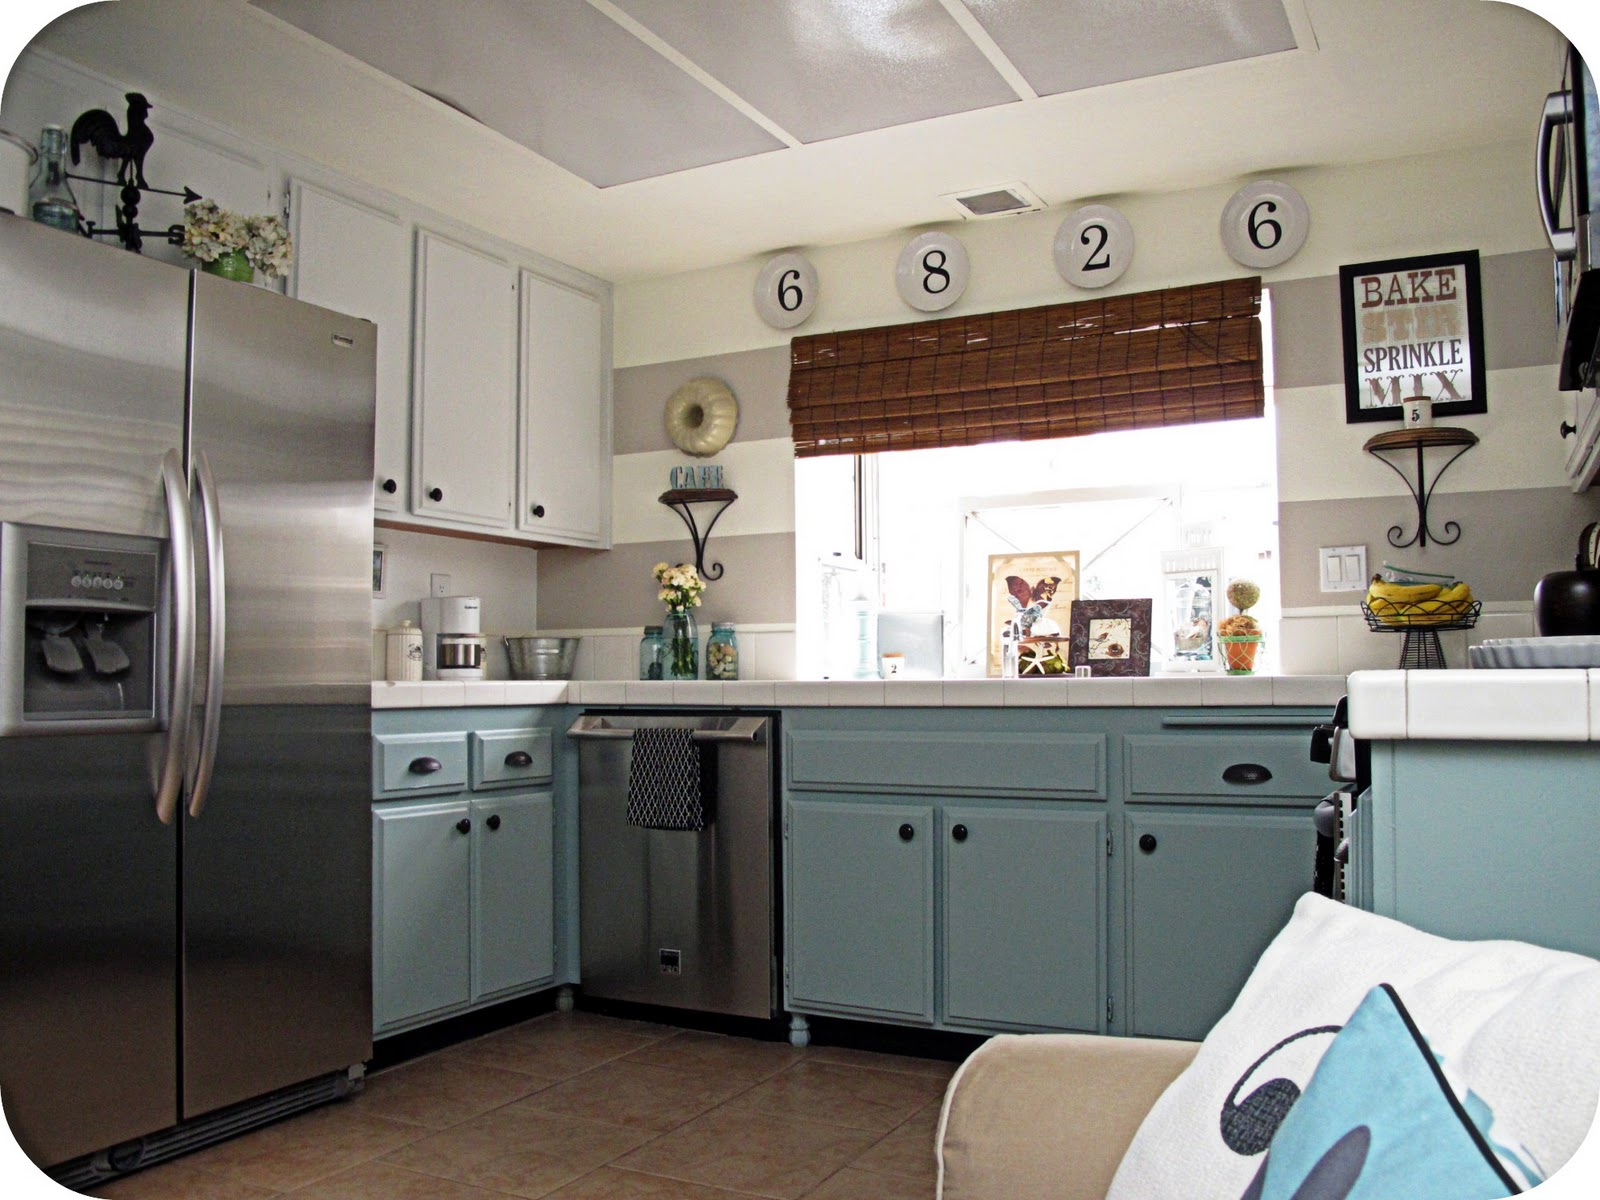 Room decorating before and after makeovers for Kitchen decorating ideas photos